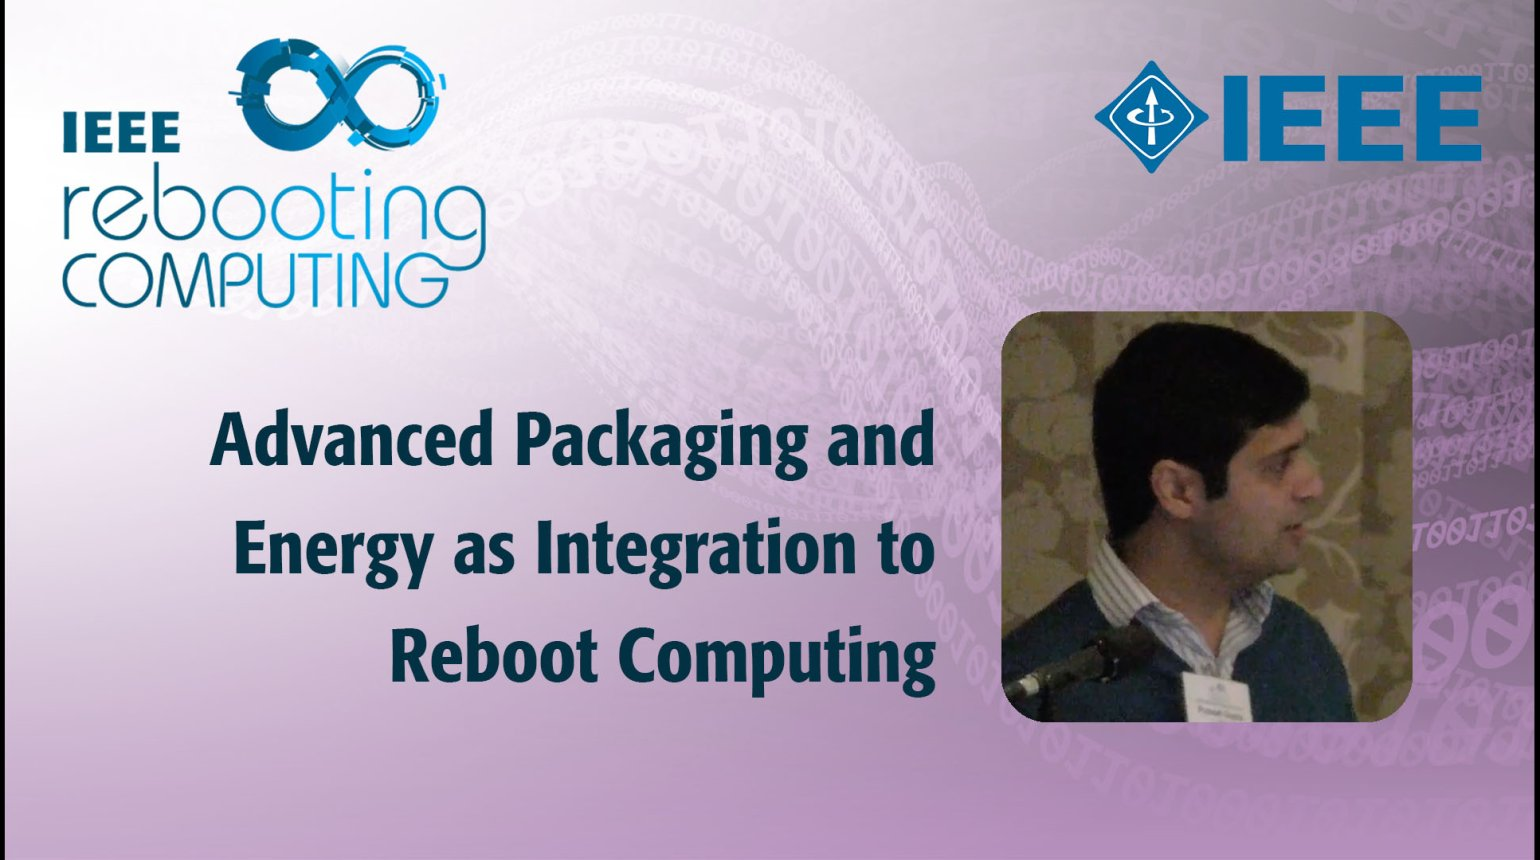 Advanced Packaging and Energy as Integration to Reboot Computing: IEEE Rebooting Computing 2017